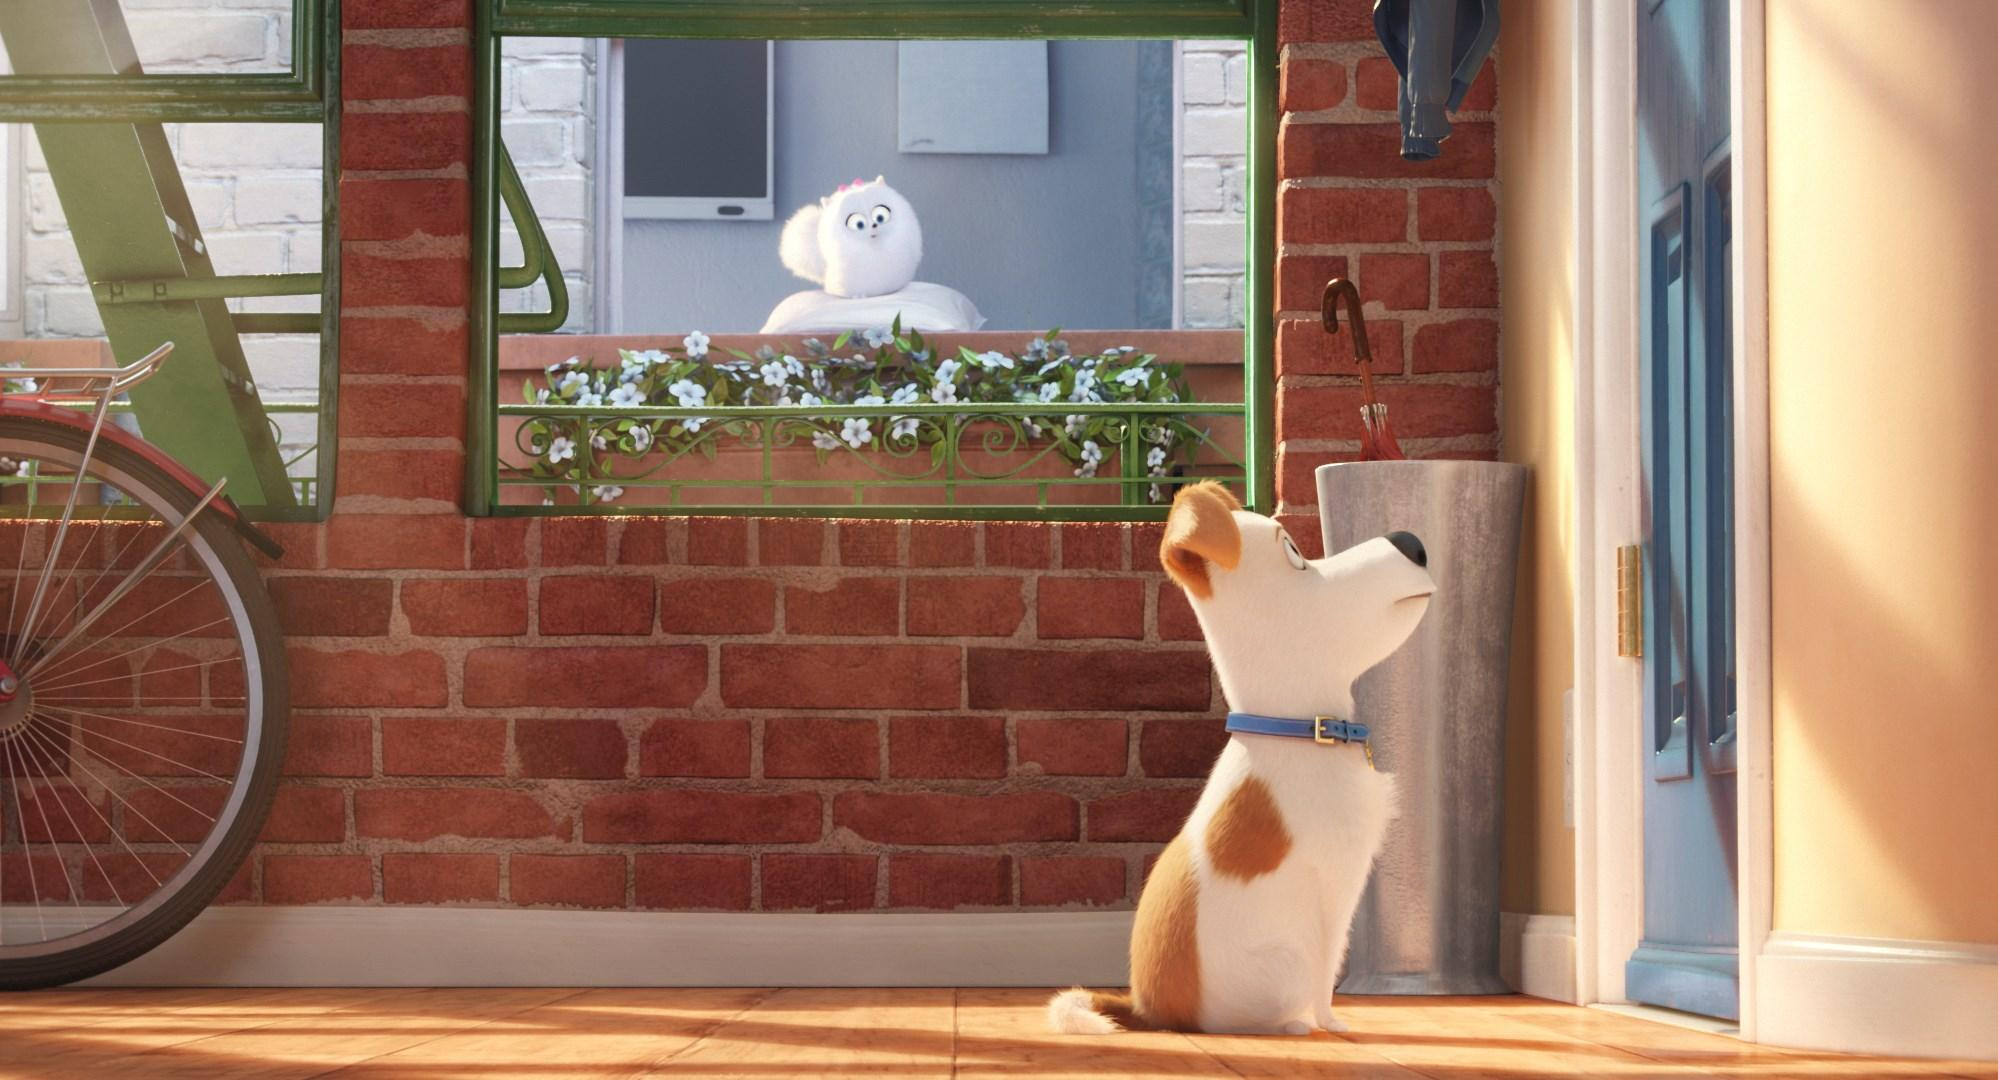 1488968 1998x1080 wallpapers desktop the secret life of pets